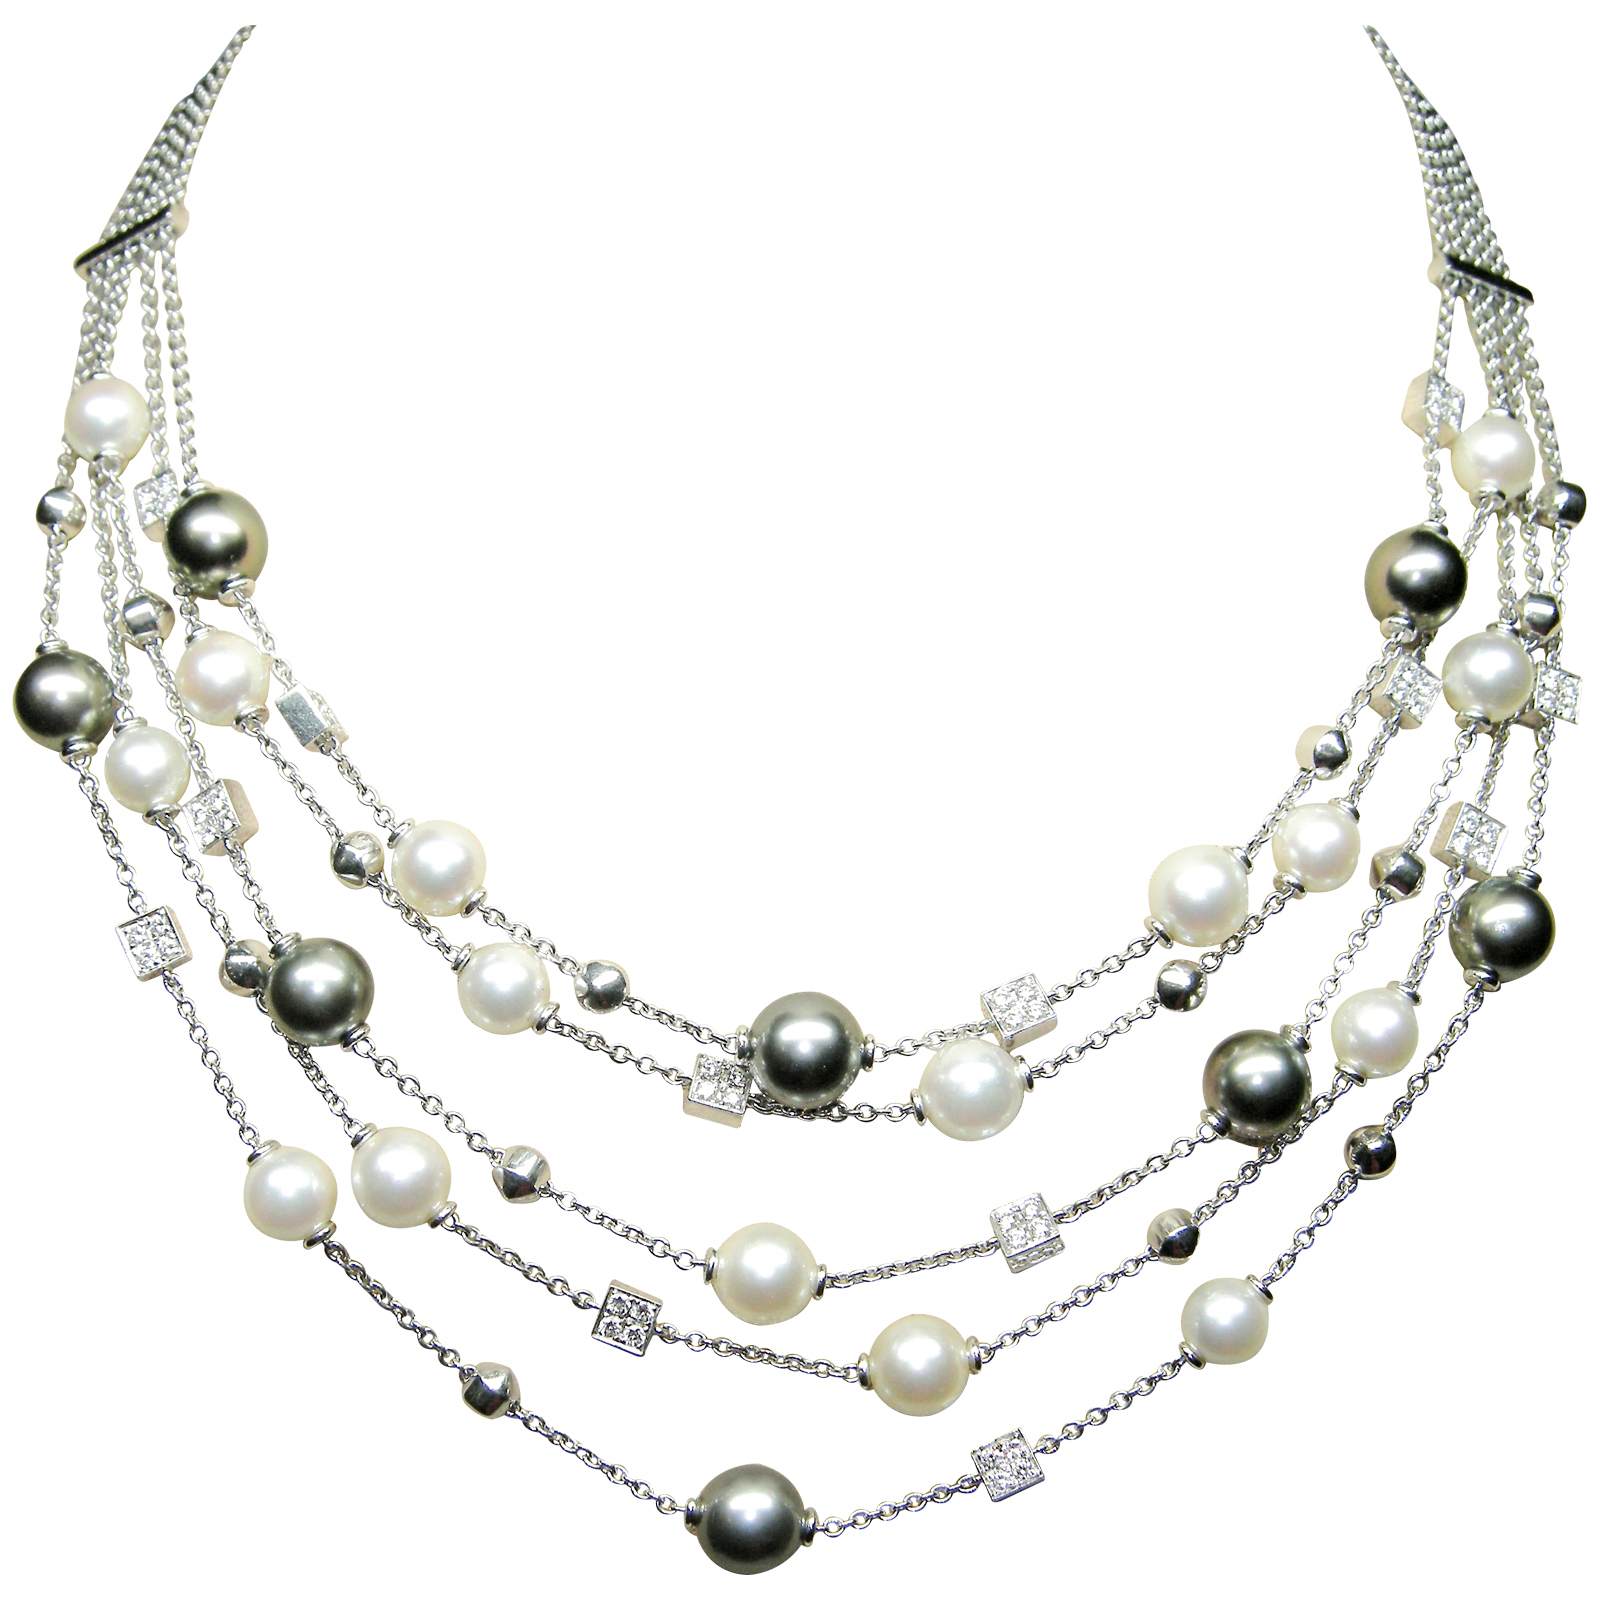 SOUTH SEA BLACK & WHITE PEARL NECKLACE BESPOKE FINE JEWELLERY BY SHAHINA HATTA